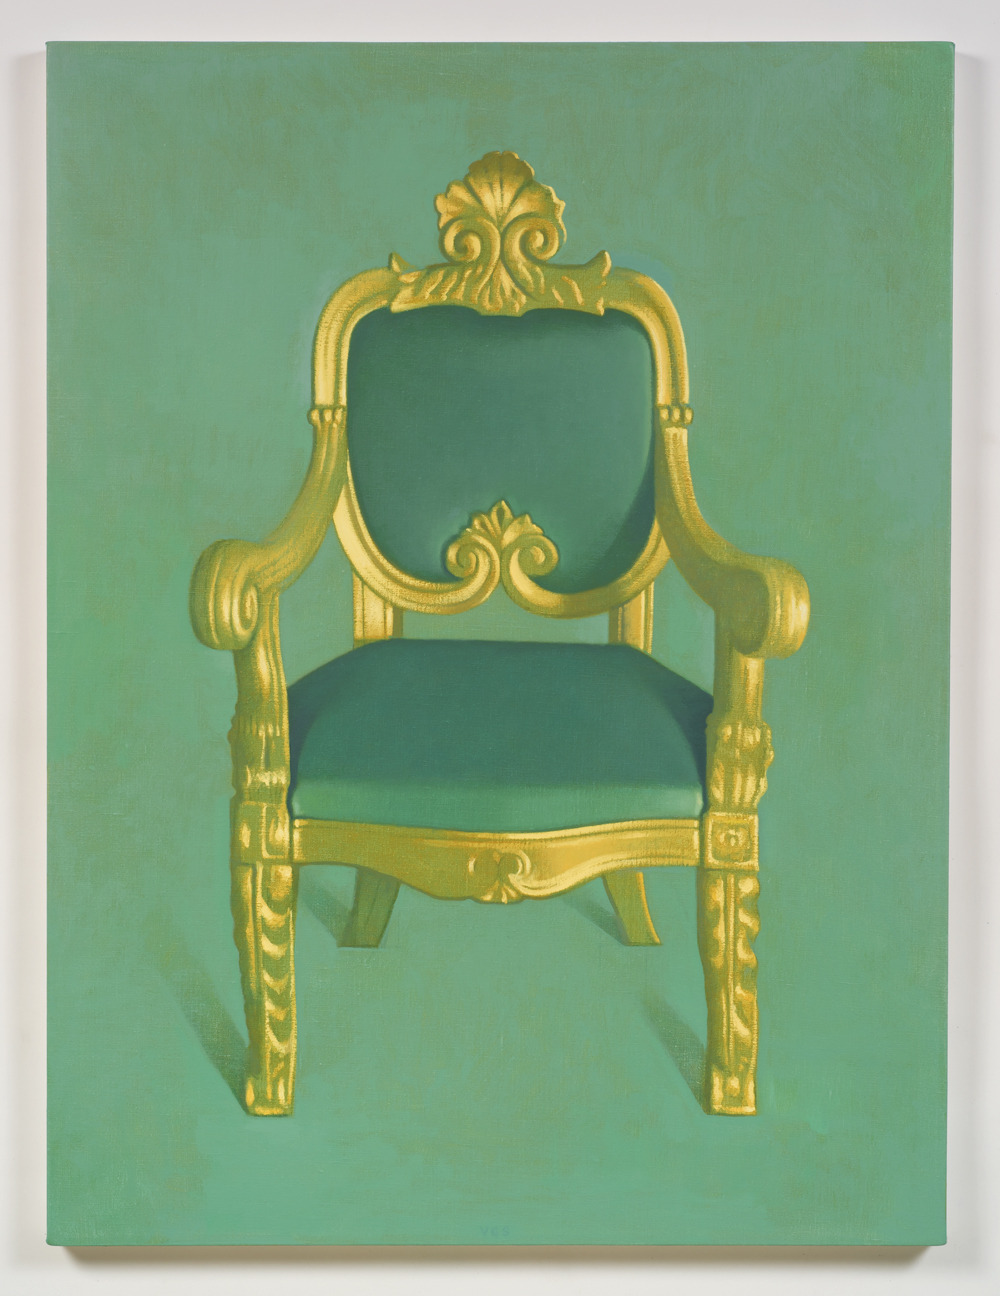 metaphysical chair_2012_oil on canvas_40 x 30 inches.jpg